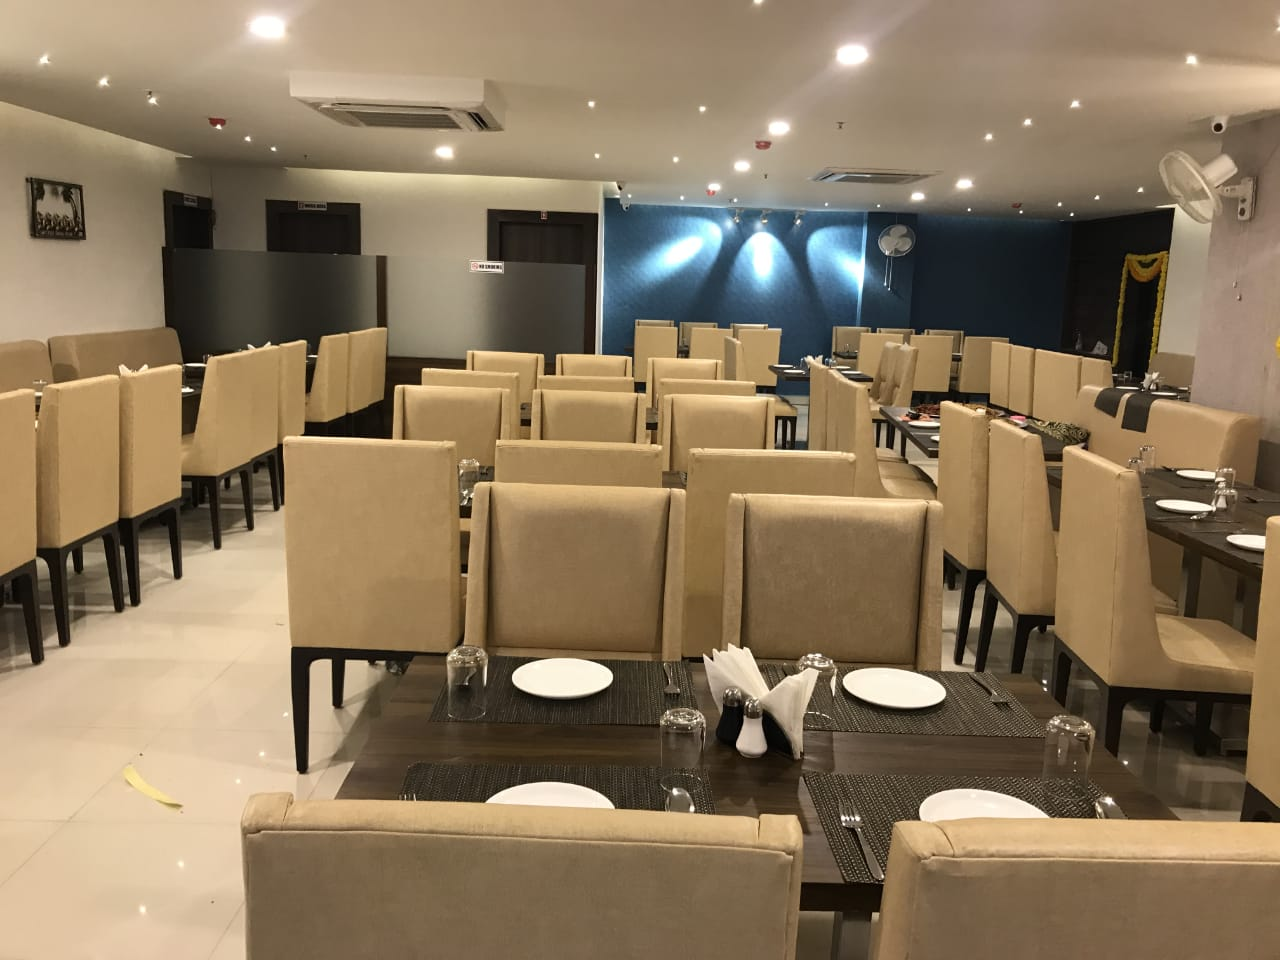 Running Multicuisine Restaurant for Sale in Hyderabad